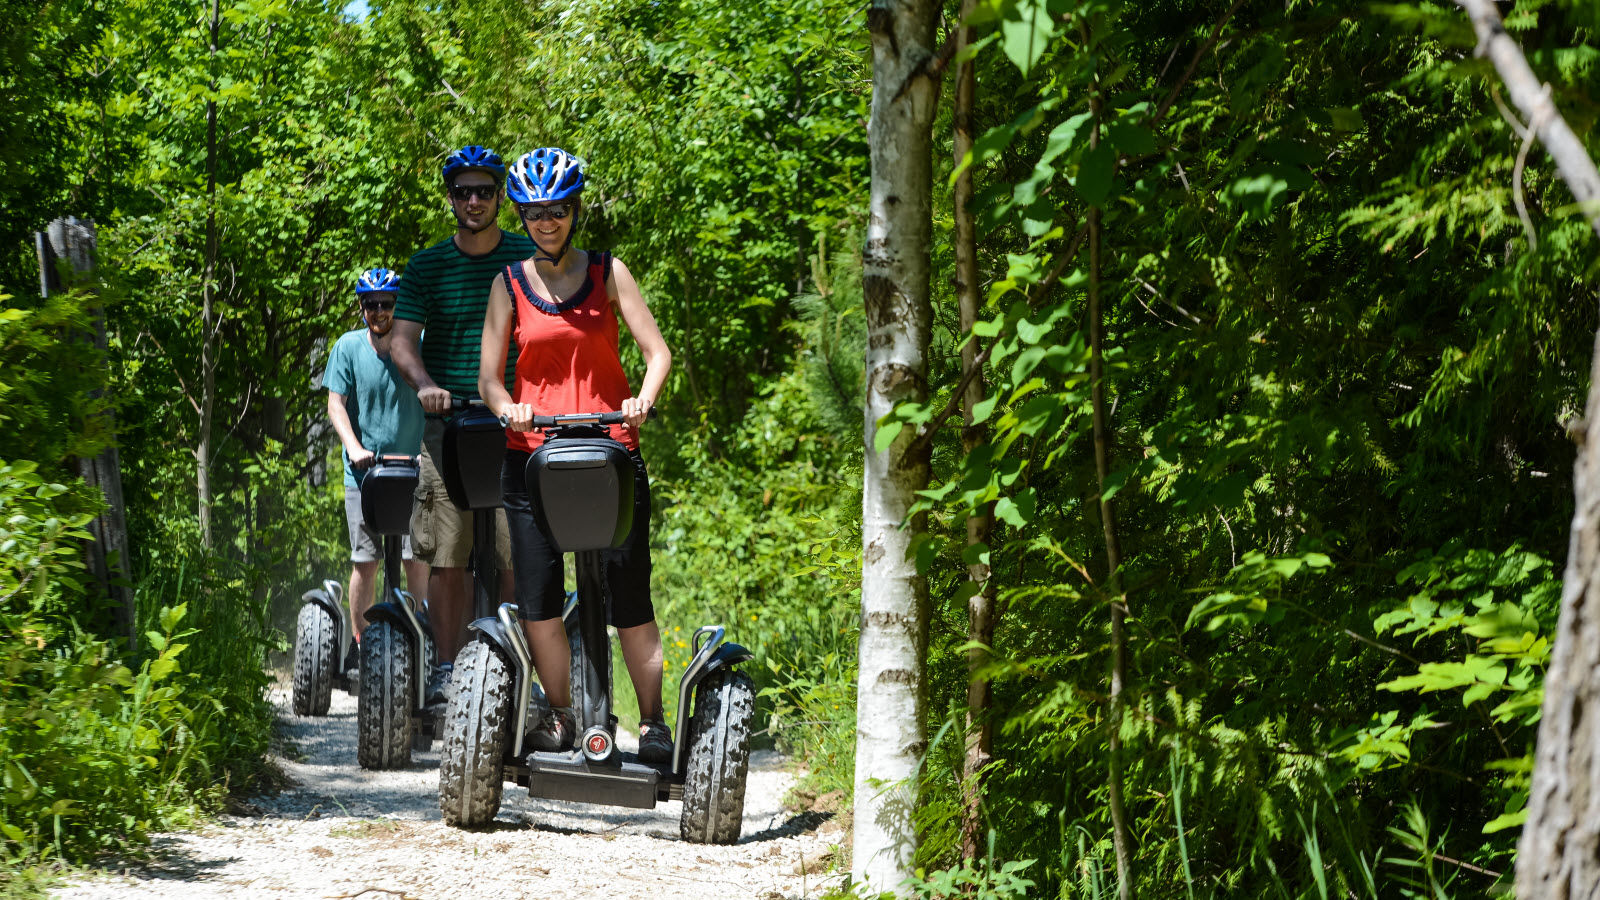 Blue Mountain Fall Activities - Segway Tours